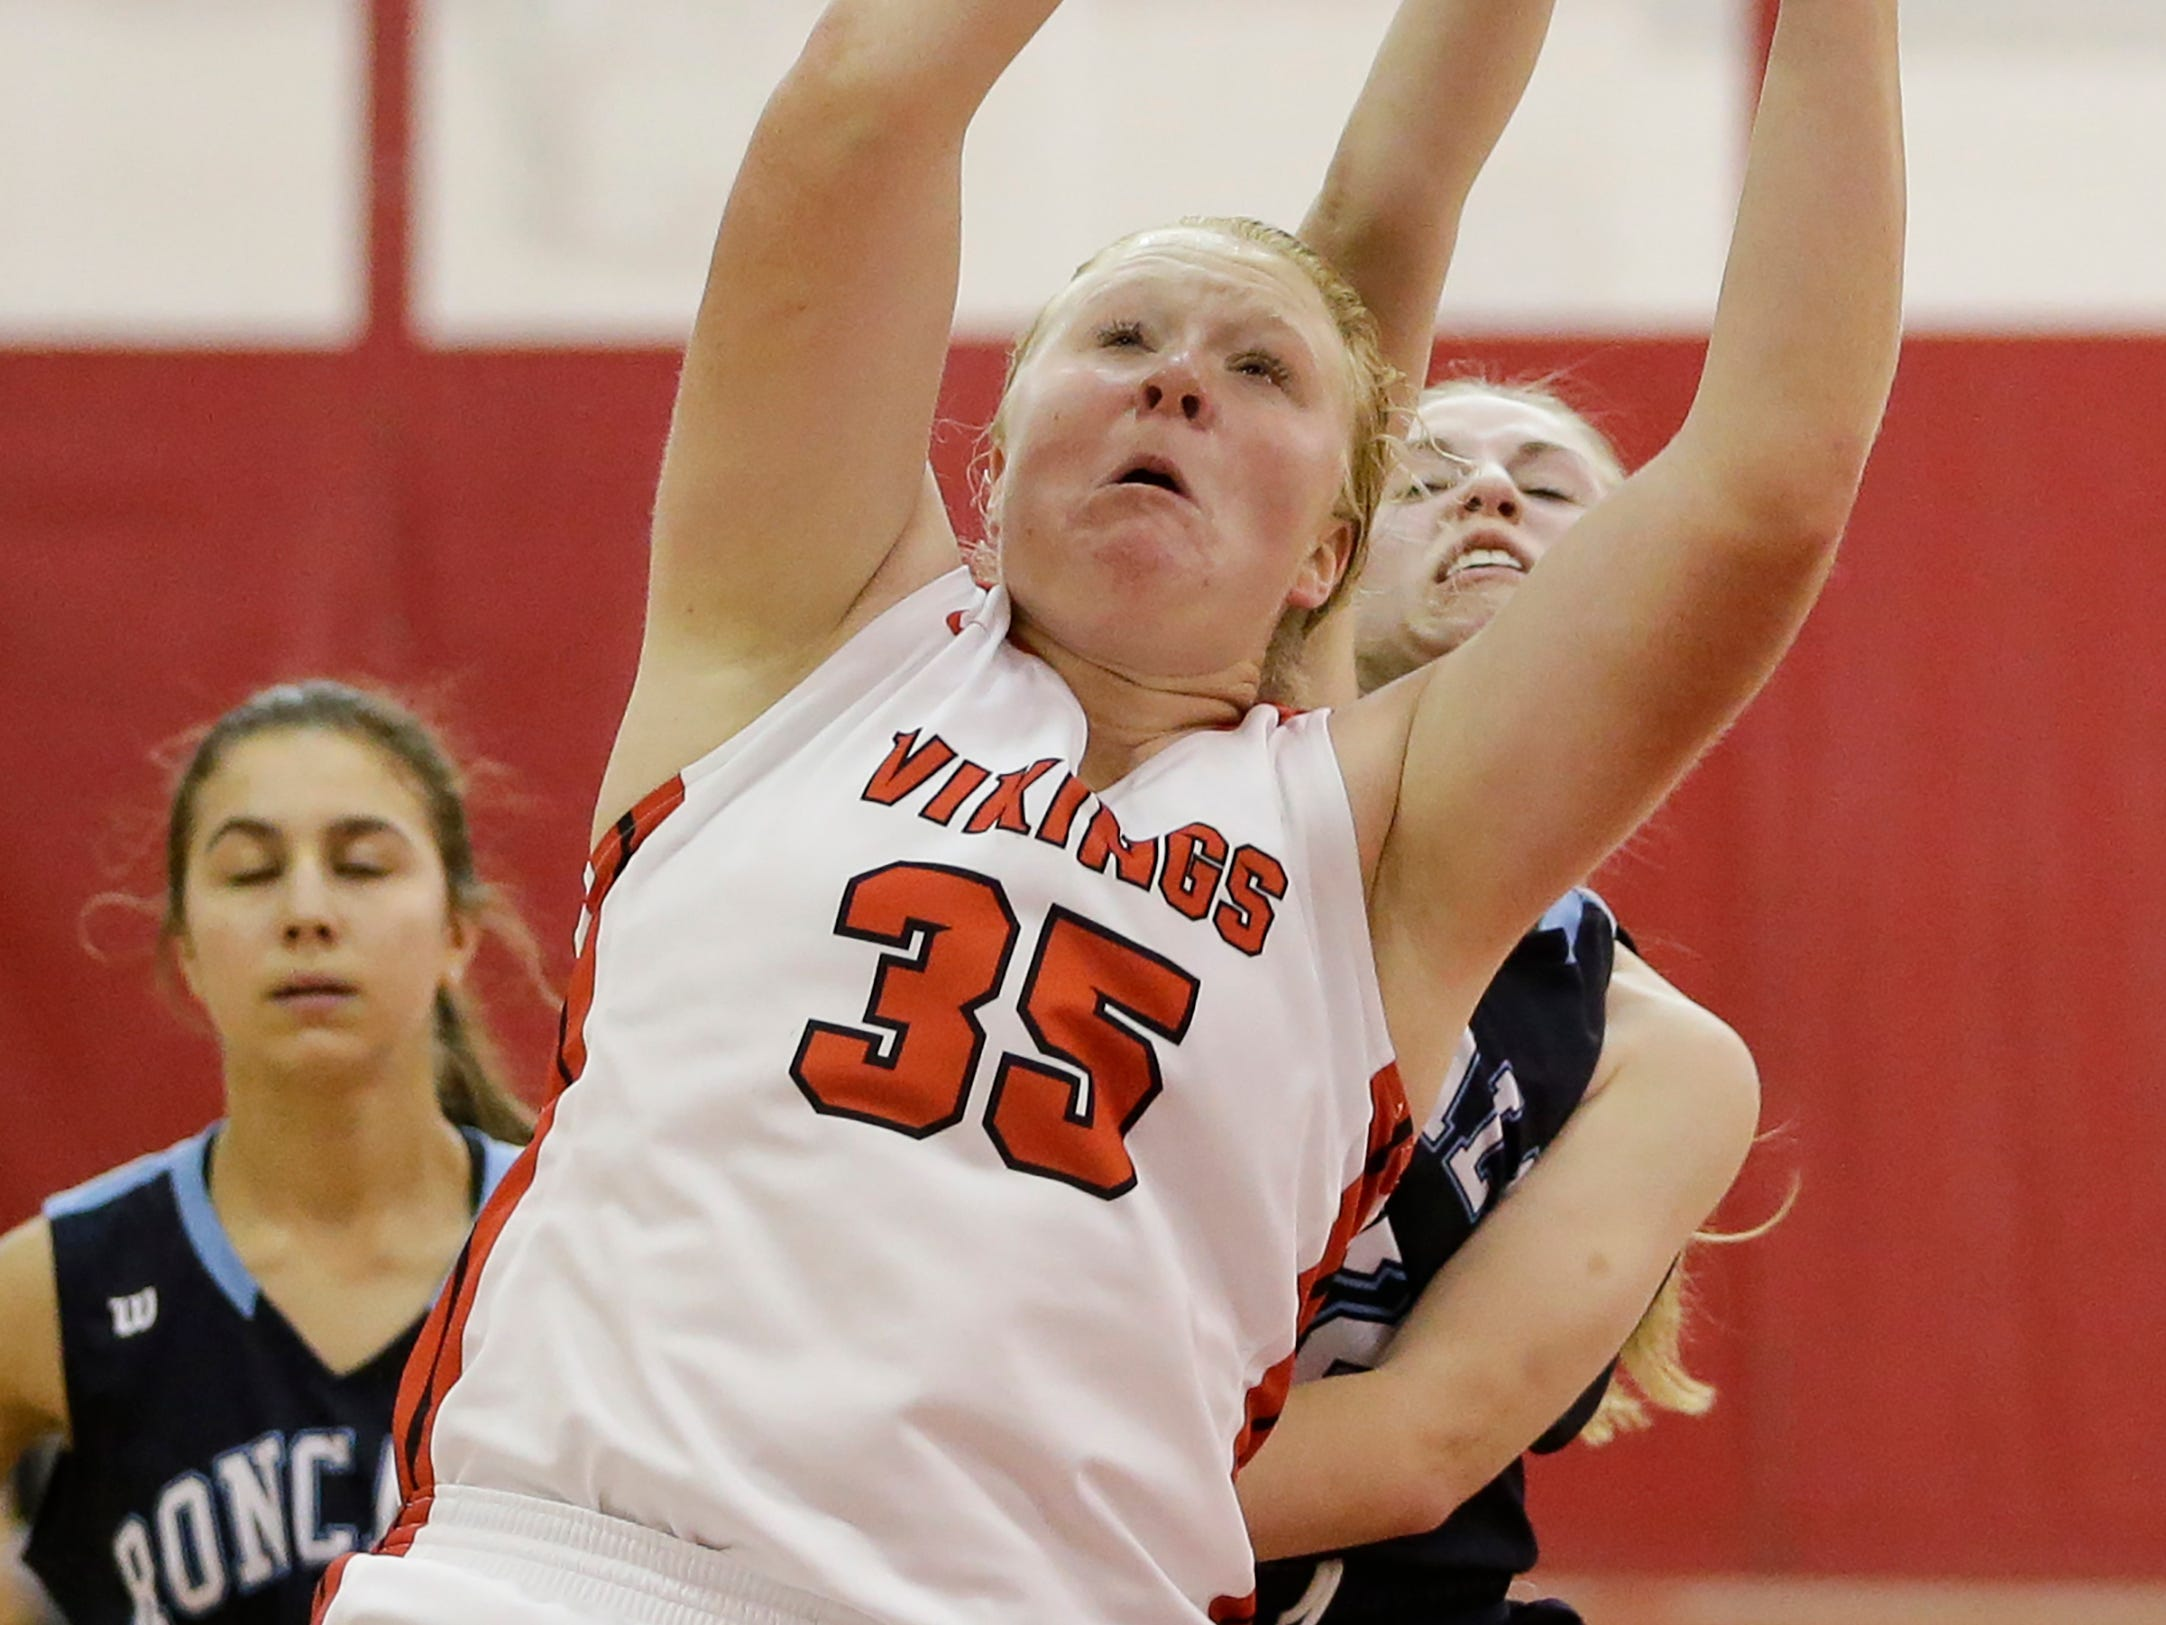 Valders' Kendra Hammel rebounds against Roncalli in an Eastern Wisconsin Conference game at Valders High School Friday, November 30, 2018, in Valders, Wis. Joshua Clark/USA TODAY NETWORK-Wisconsin